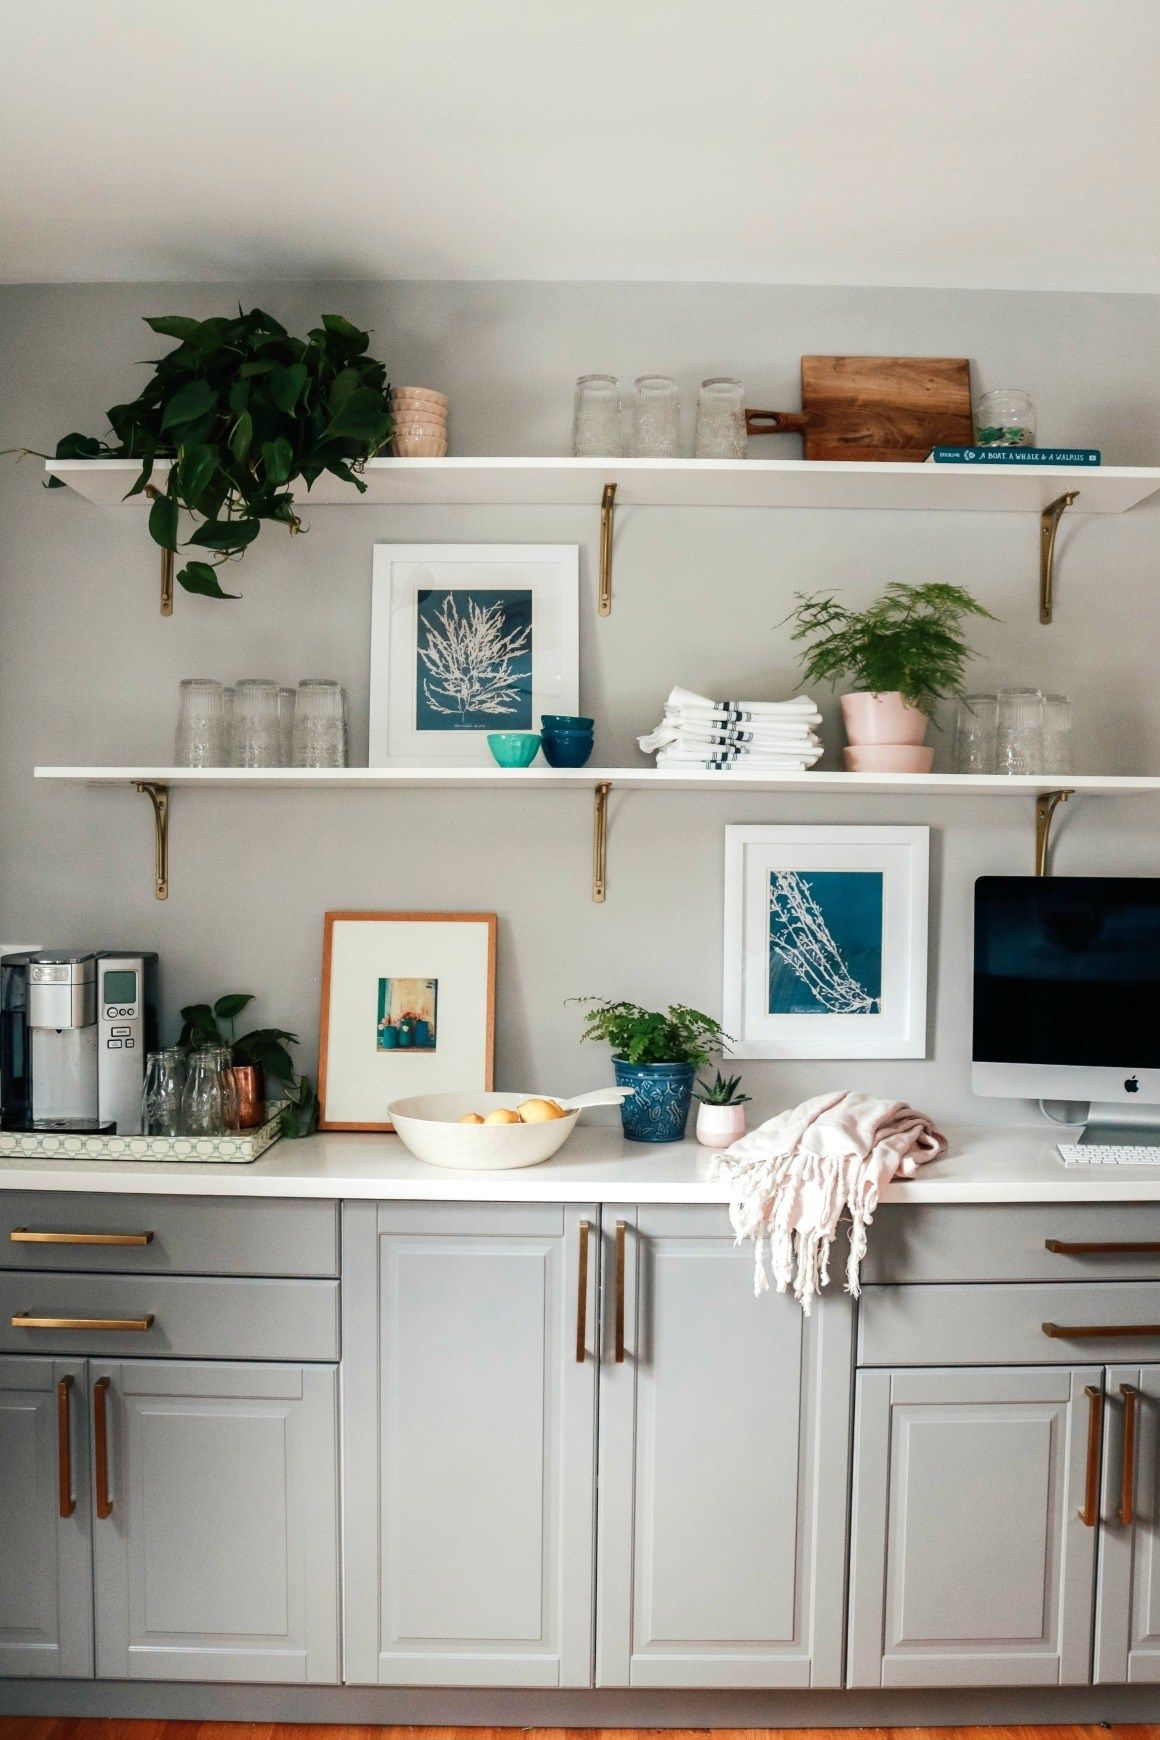 kitchen shelf styling diy open shelves with affordable decor dining room shelves kitchen on kitchen decor open shelves id=79710